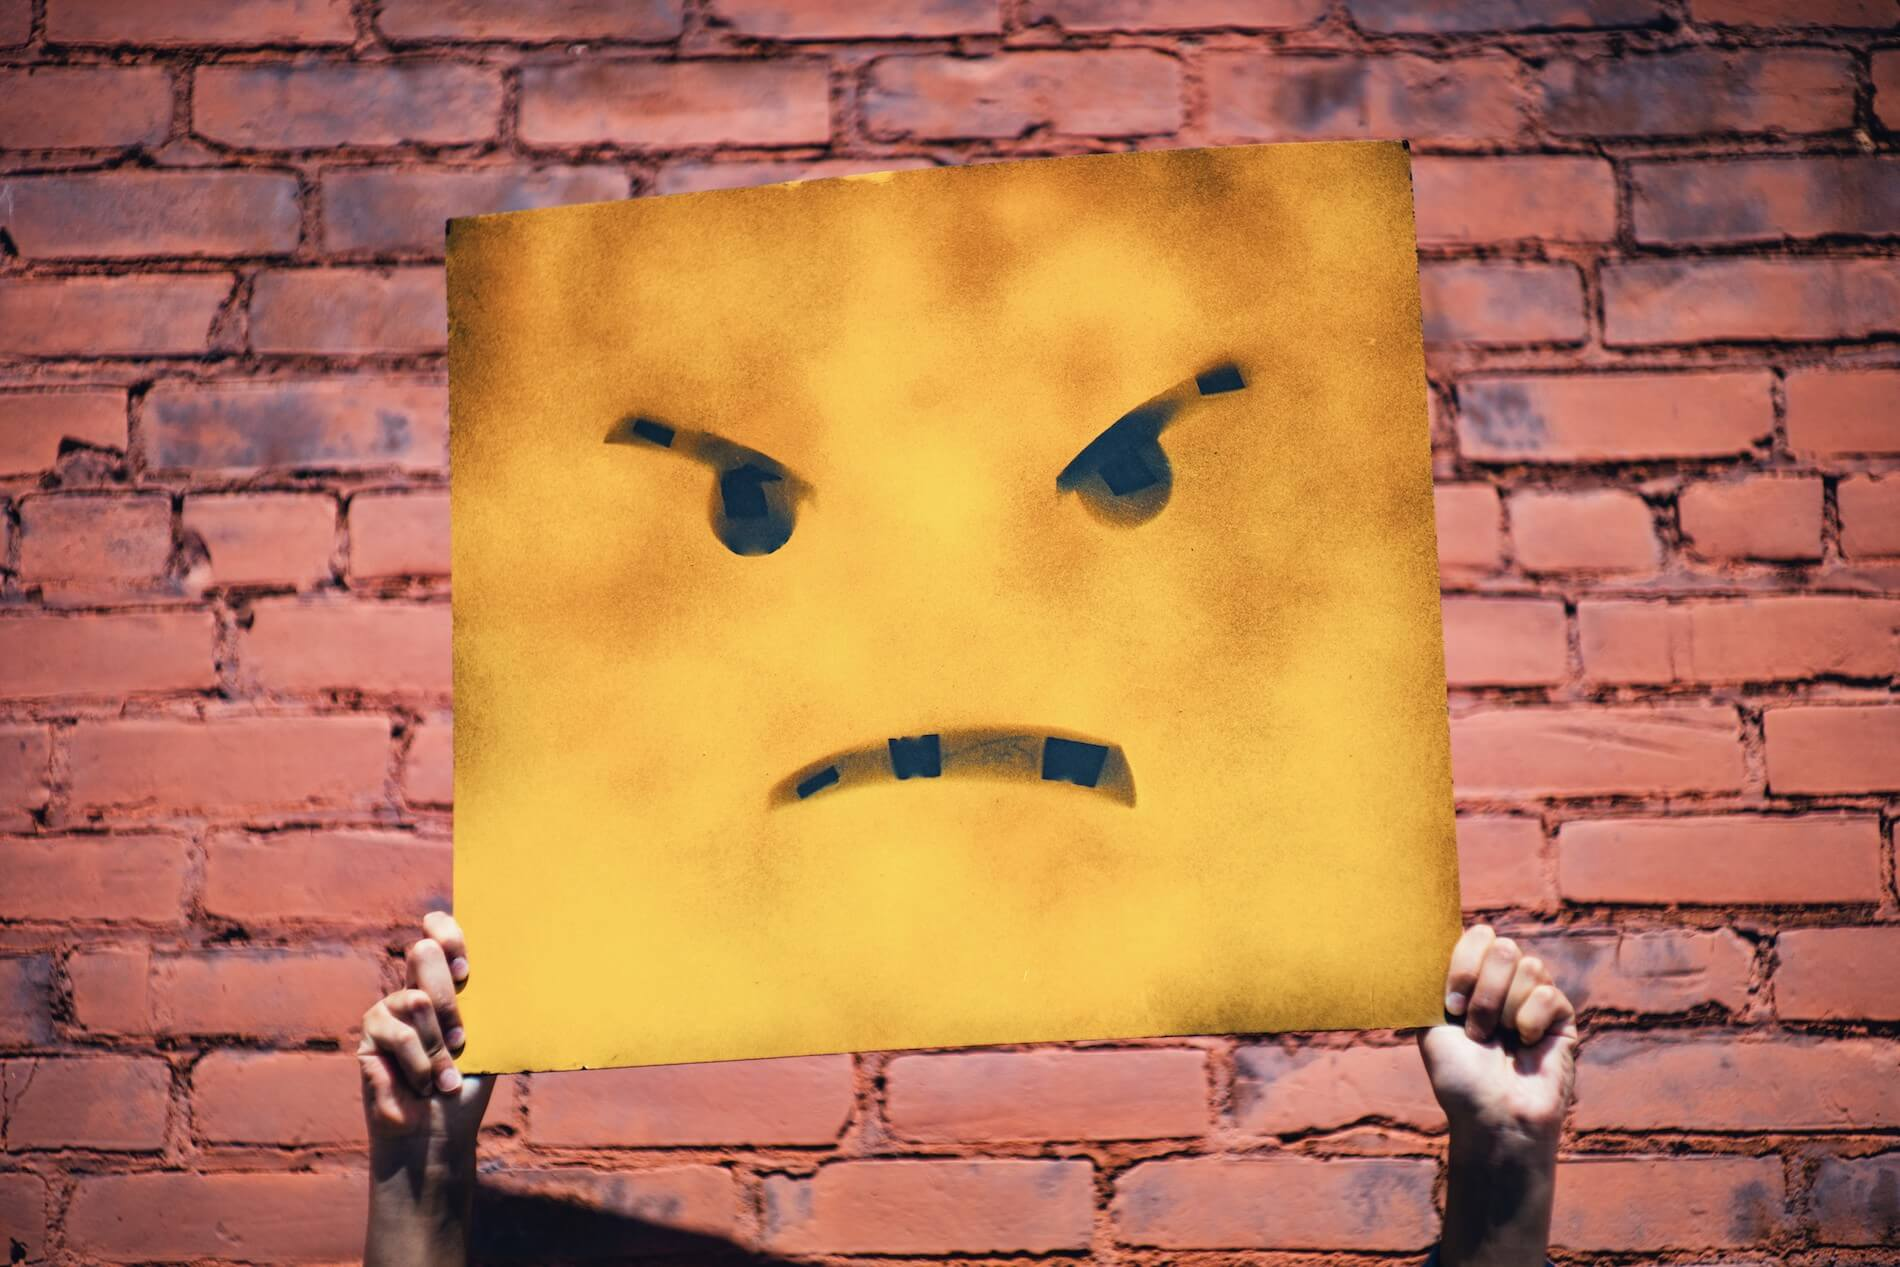 Angry face painted on rectangle yellow banner